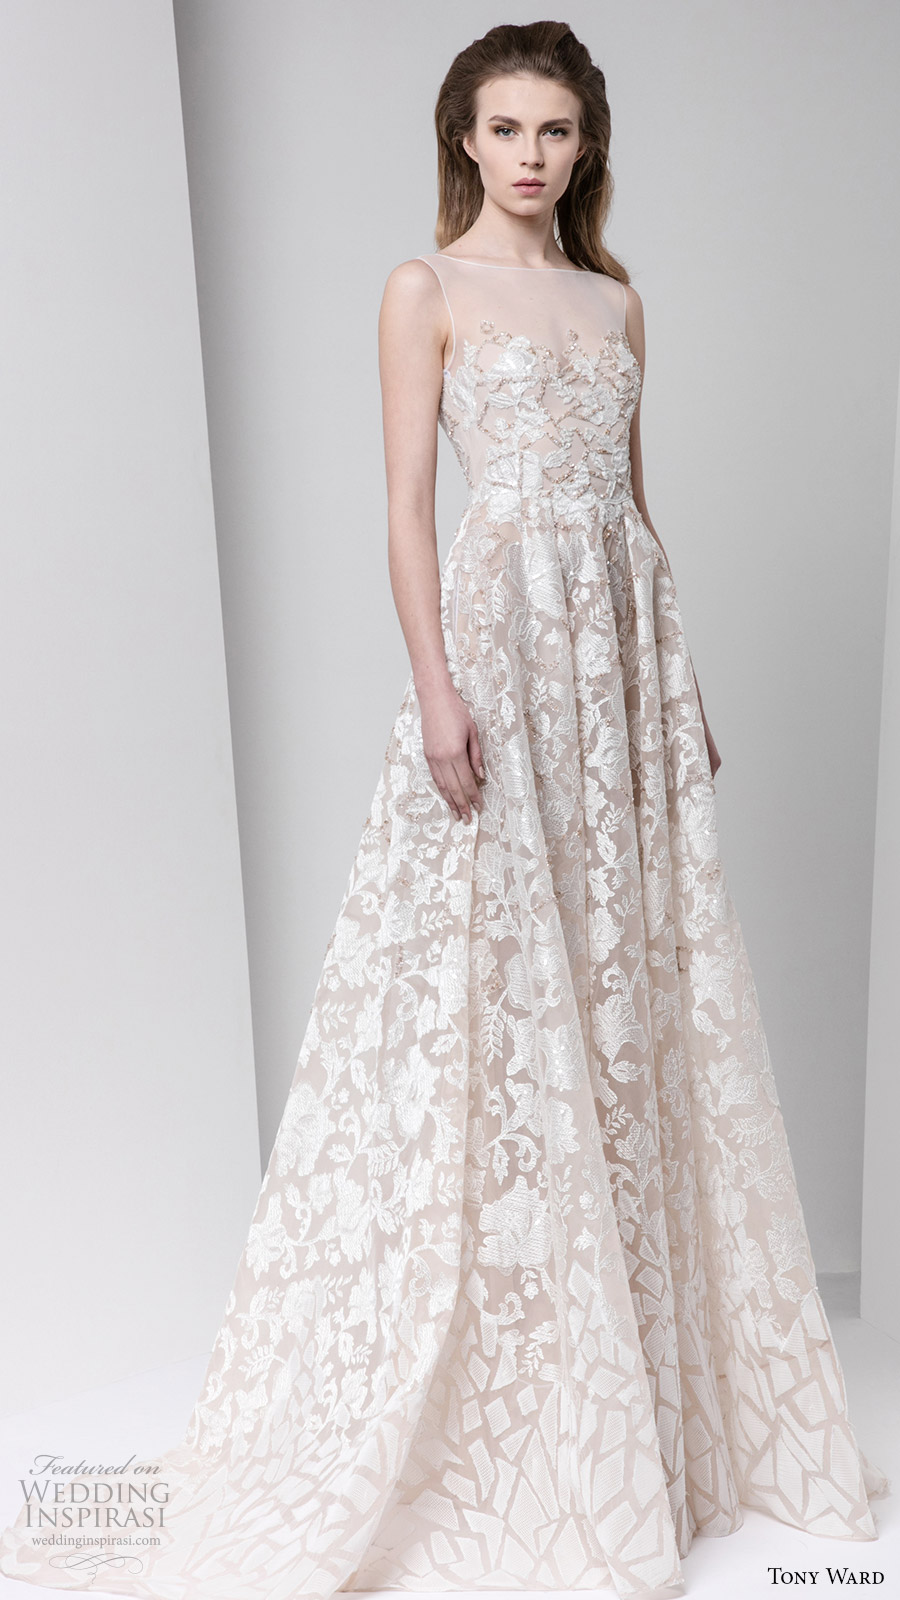 tony ward fall winter 2016 2017 rtw sleeveless illusion bateau neck a line off white evening dress bridal inspiration